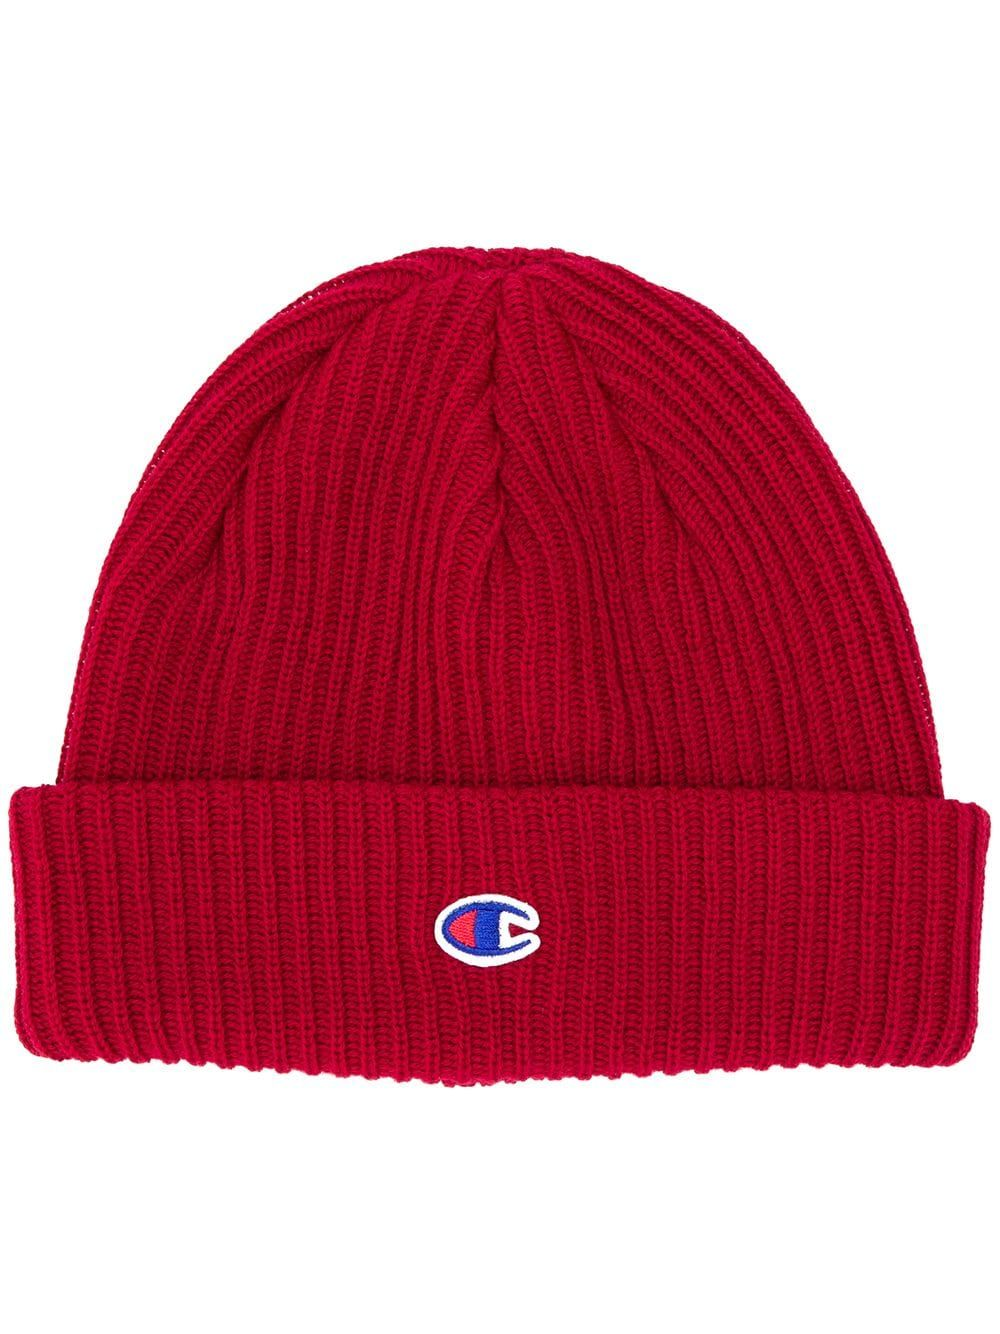 b02d8ea2806 CHAMPION CHAMPION CONTRAST LOGO BEANIE - RED.  champion